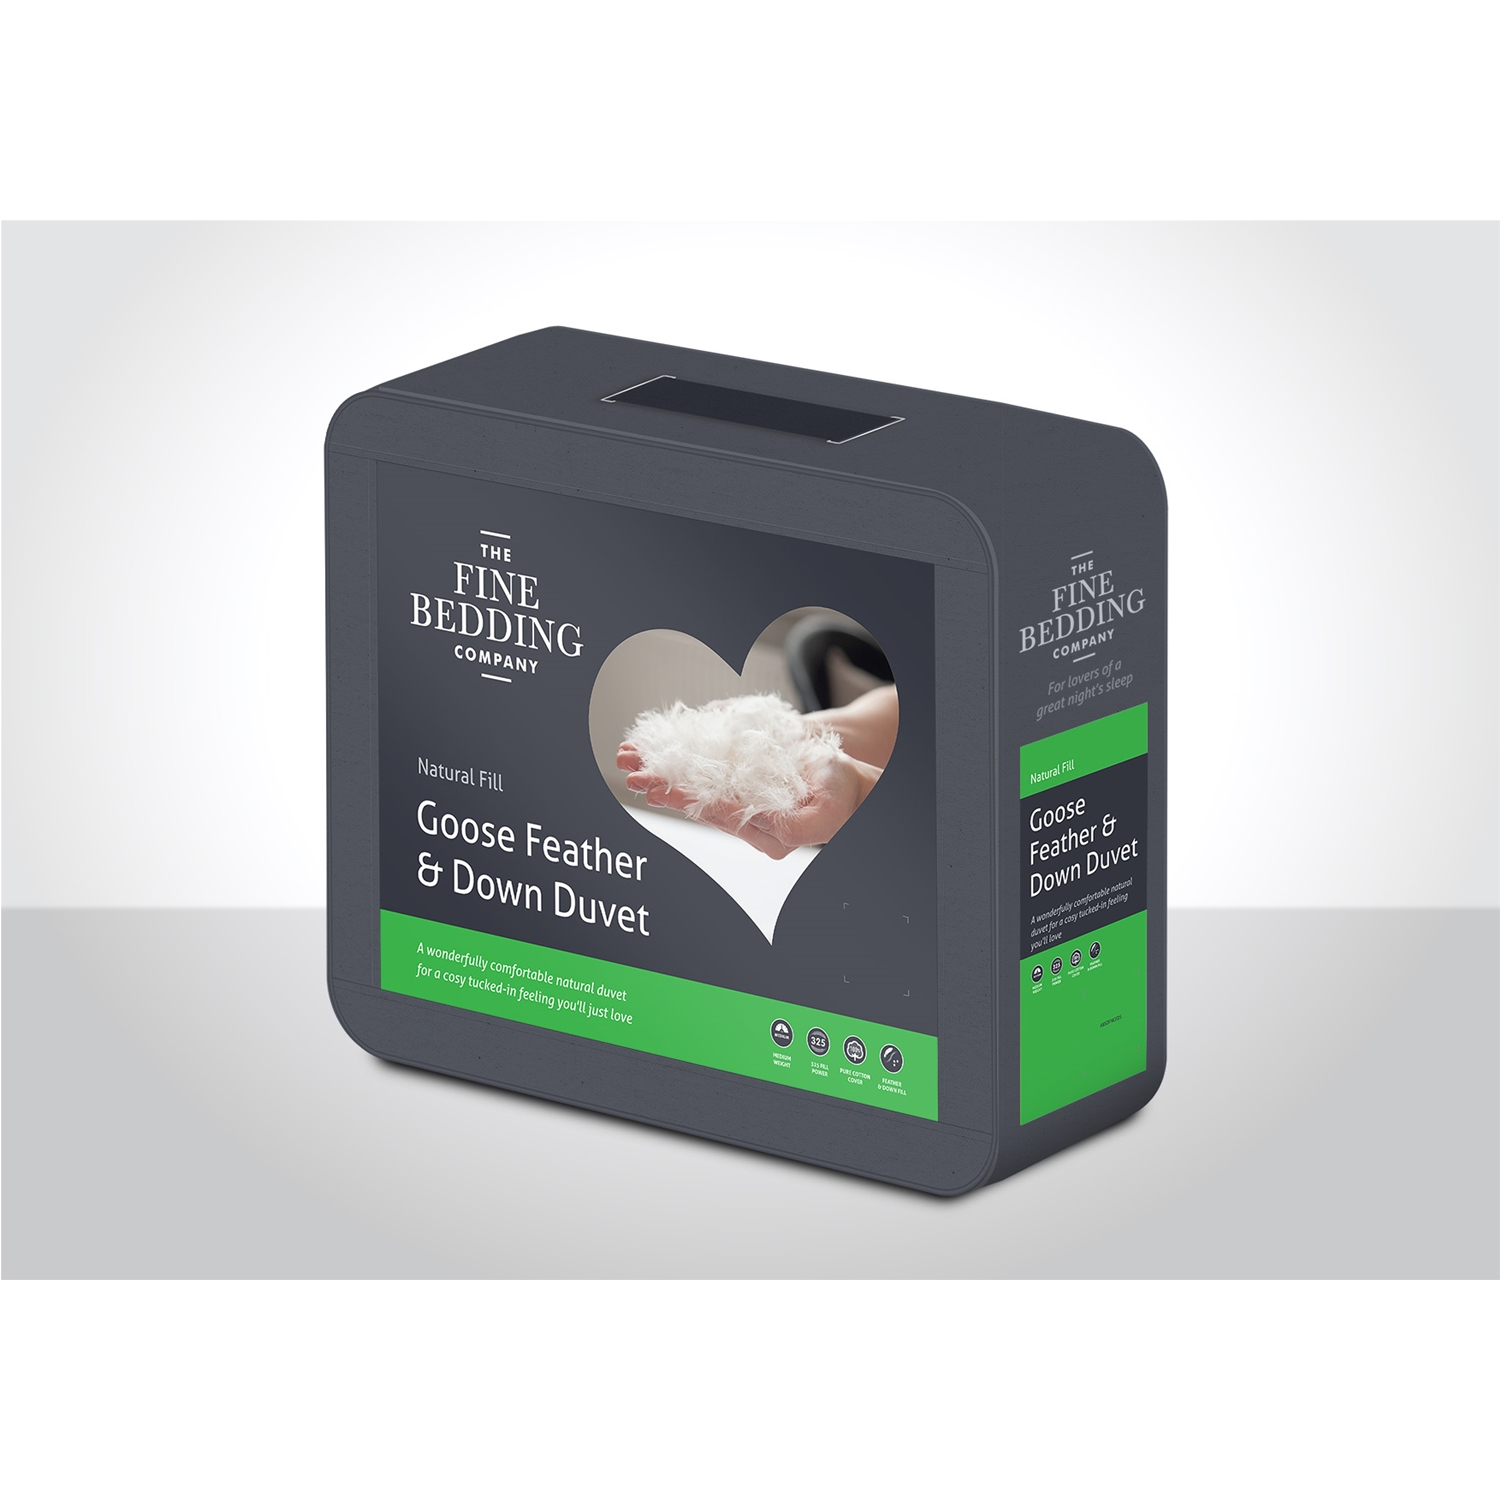 Image of Fine Bedding Company Goose Feather & Down Duvet, 13.5 Tog, Double